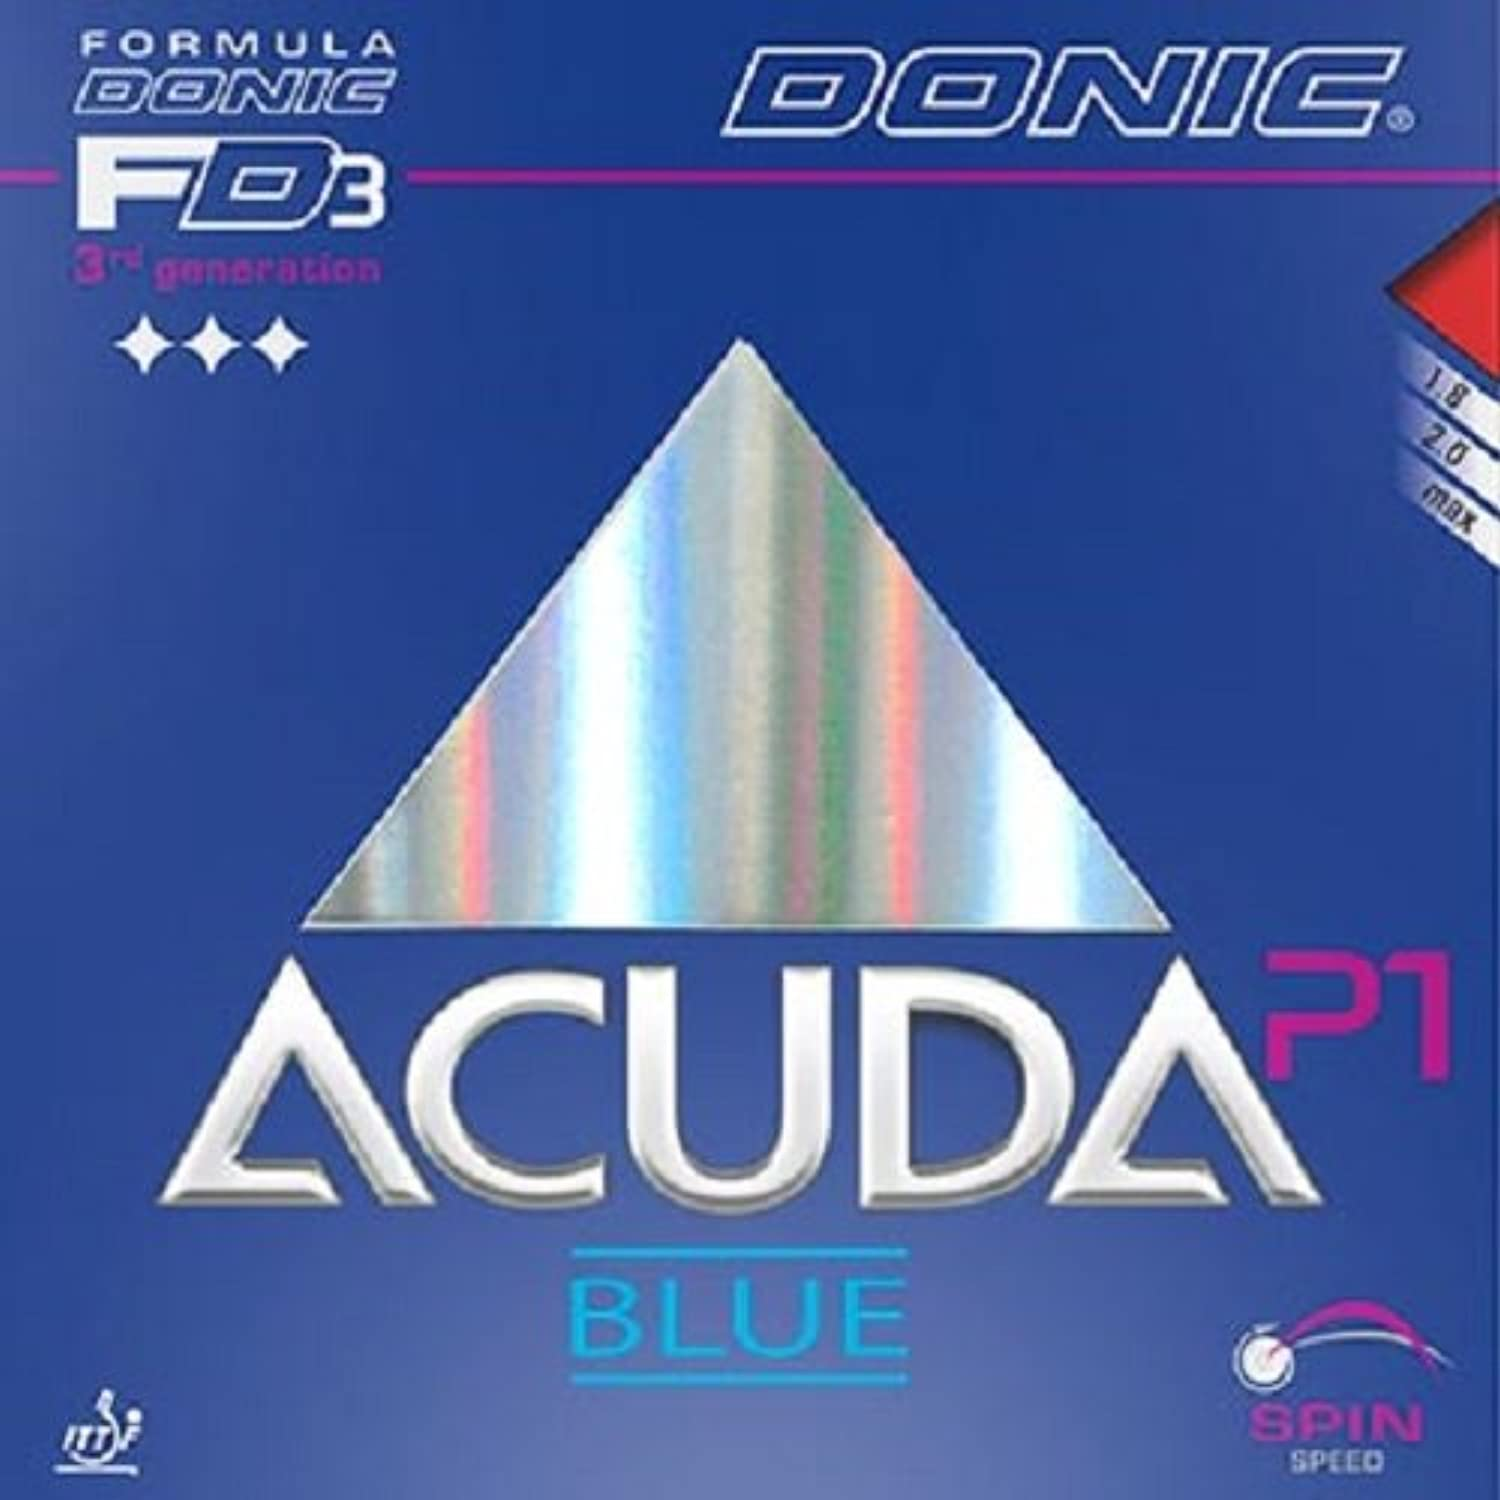 Donic Rubber Acuda blueee P1, 2.00 mm red and black